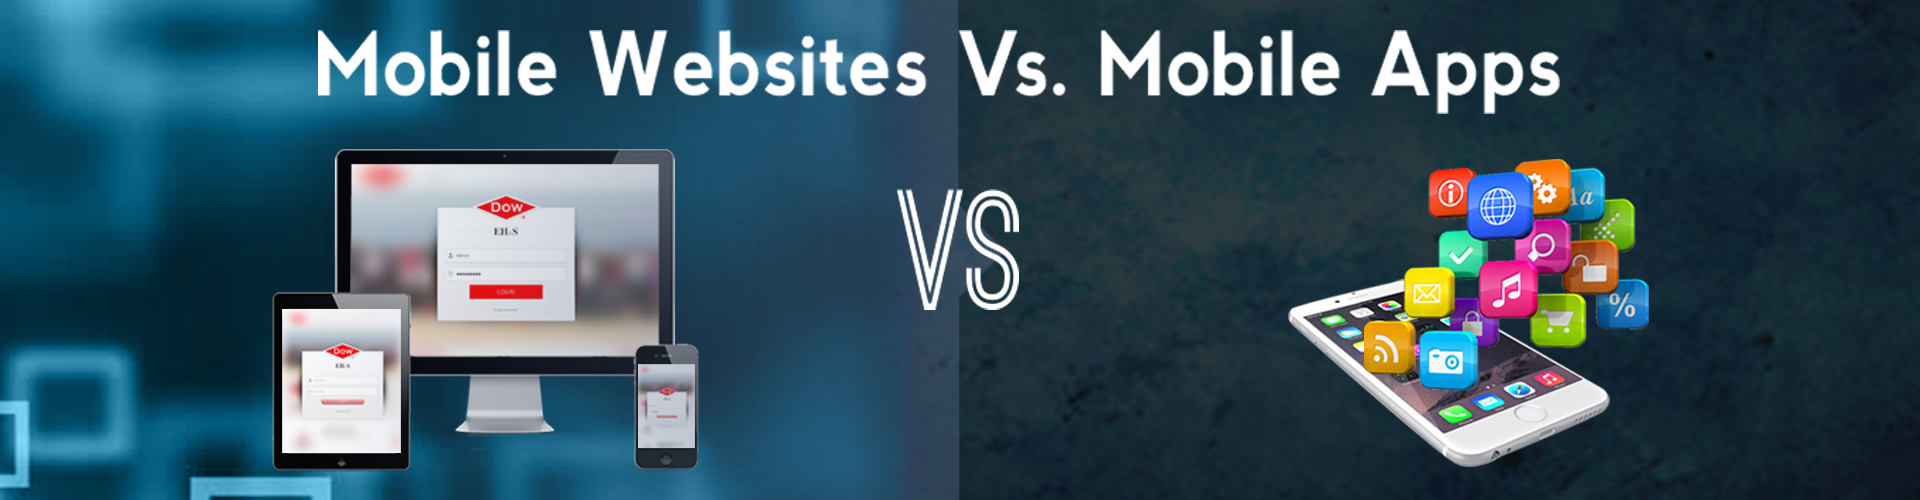 Mobile Websites Vs. Mobile Apps